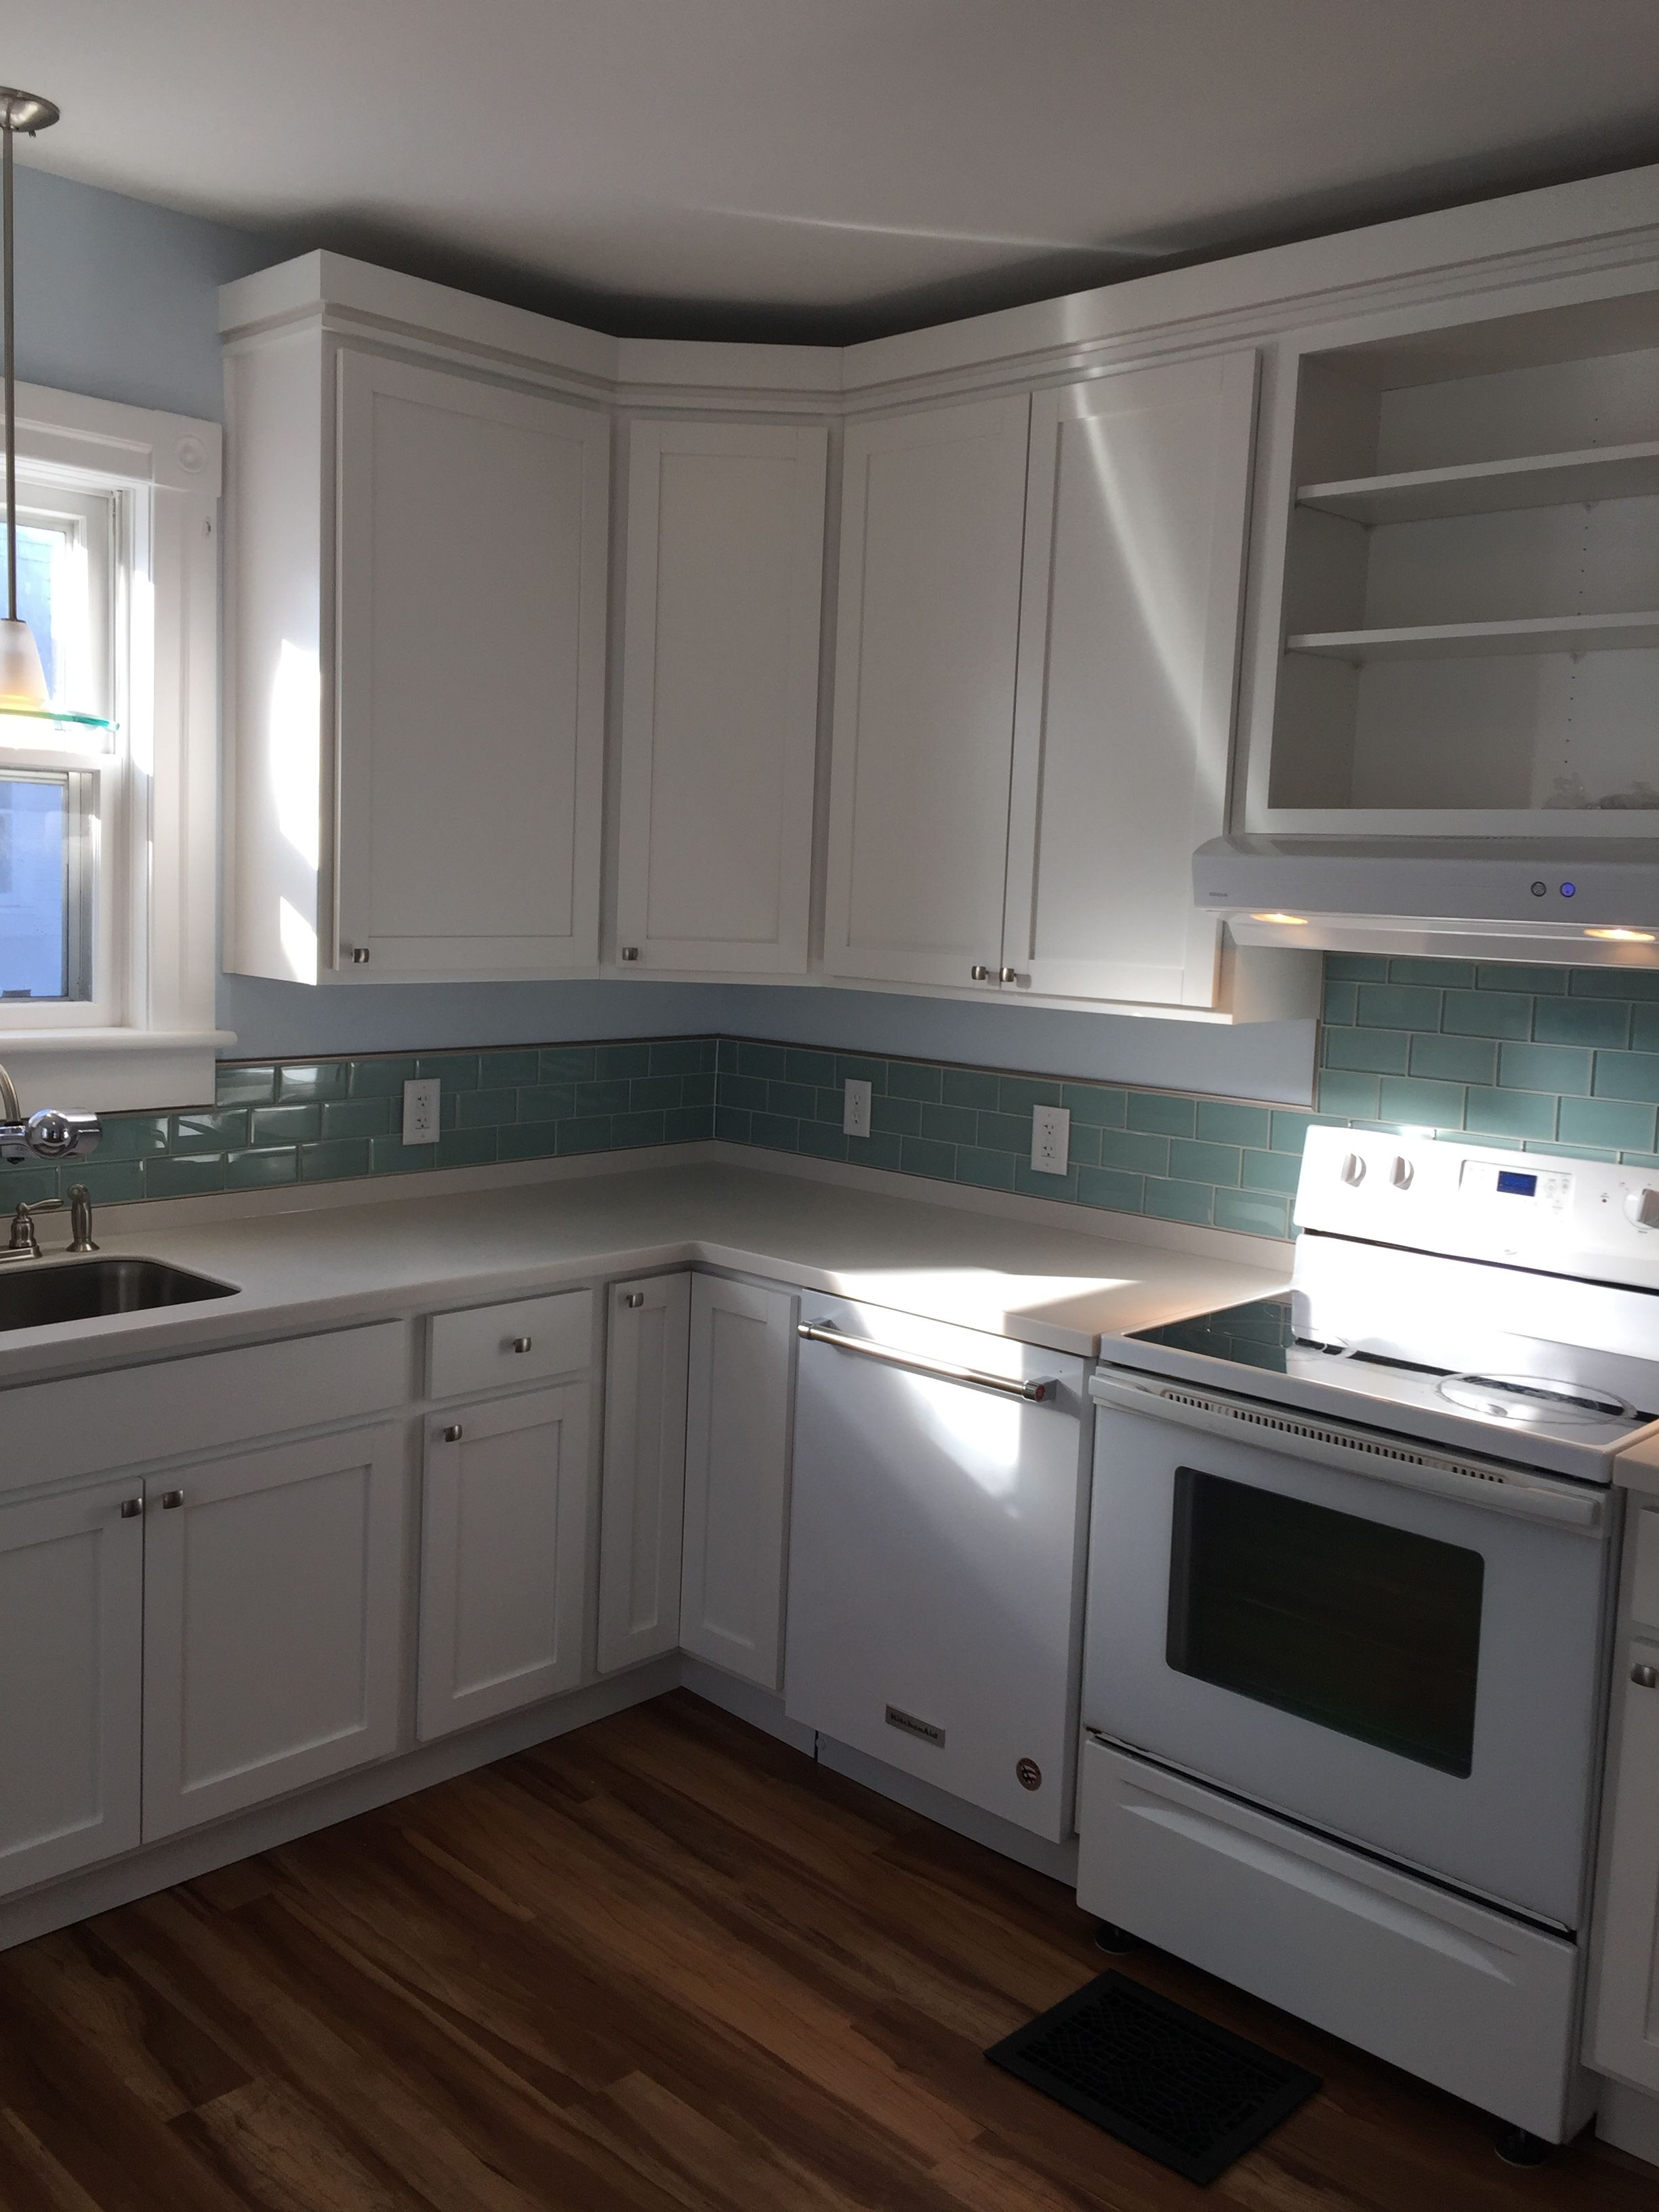 kitchen cabinets image by c r little builders inc on jobs home decor home on r kitchen cabinets id=24839